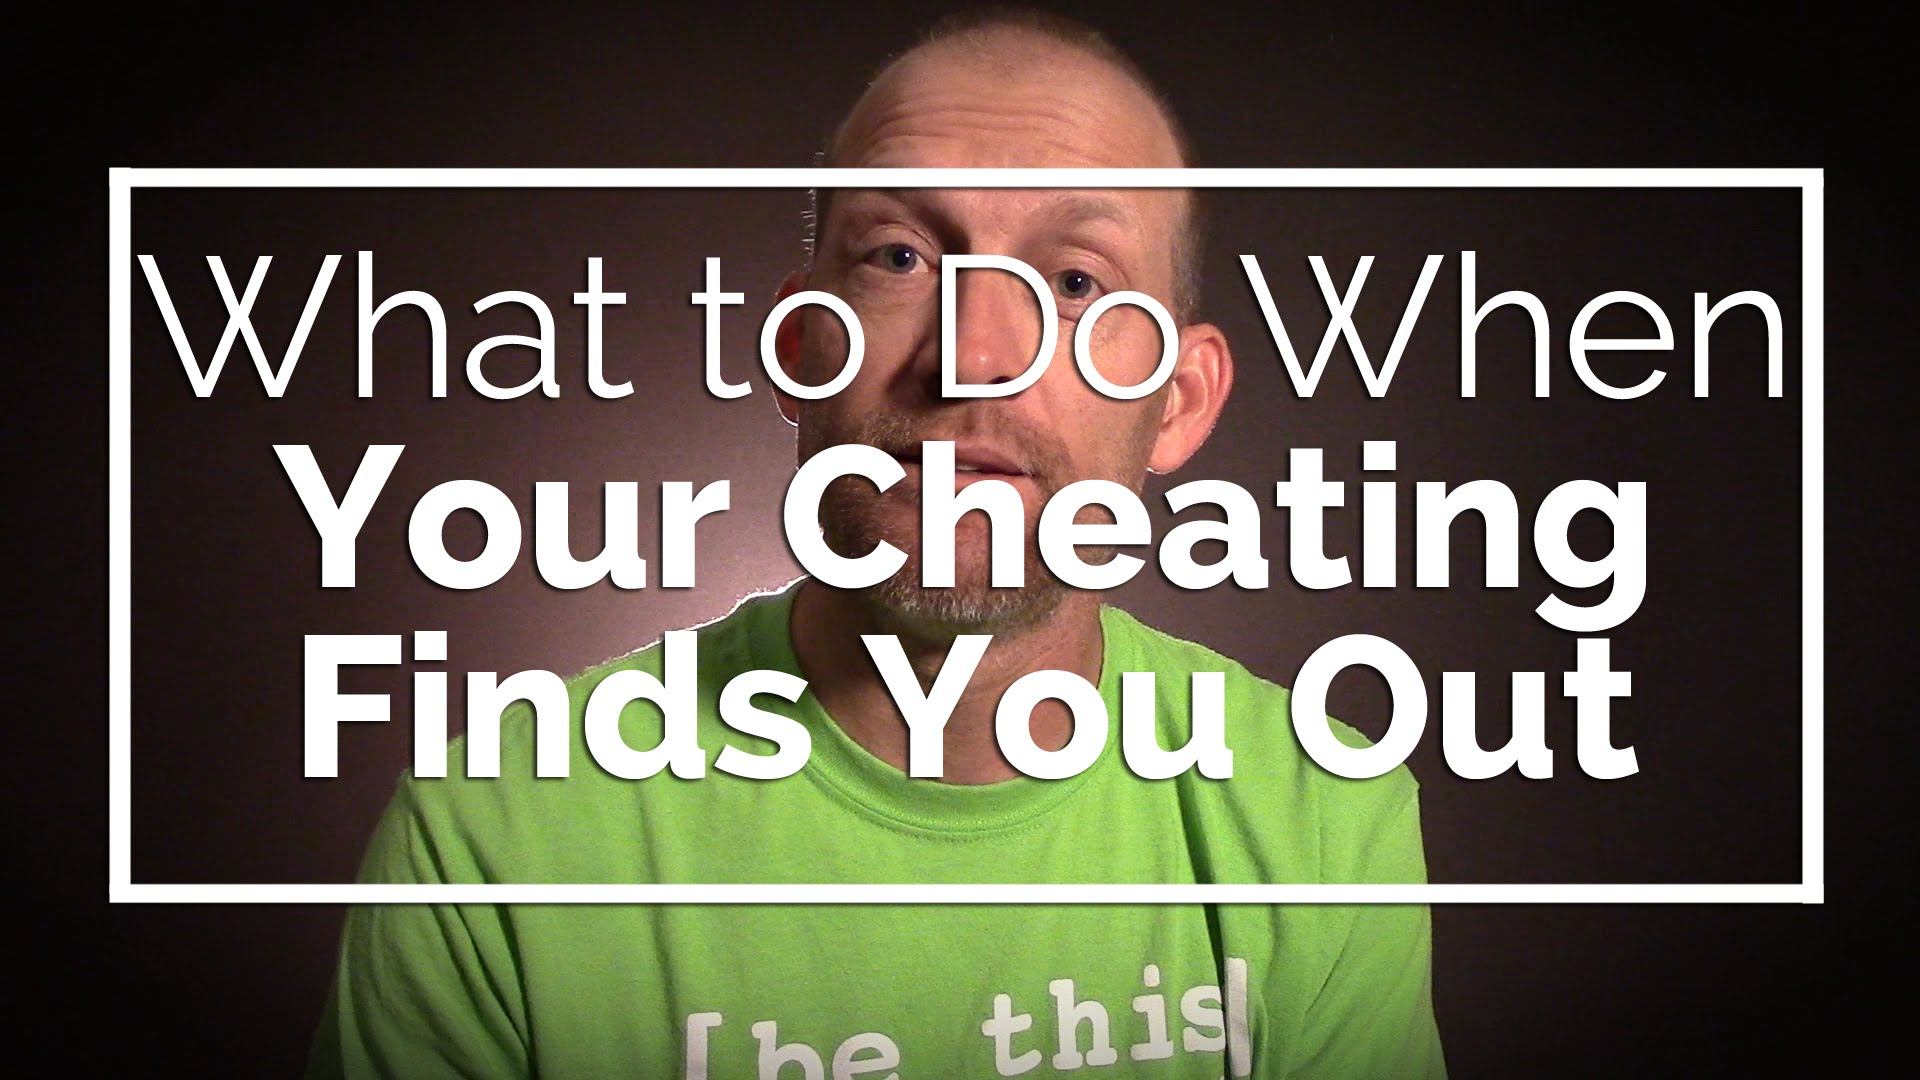 What to Do When Your Cheating Finds You Out